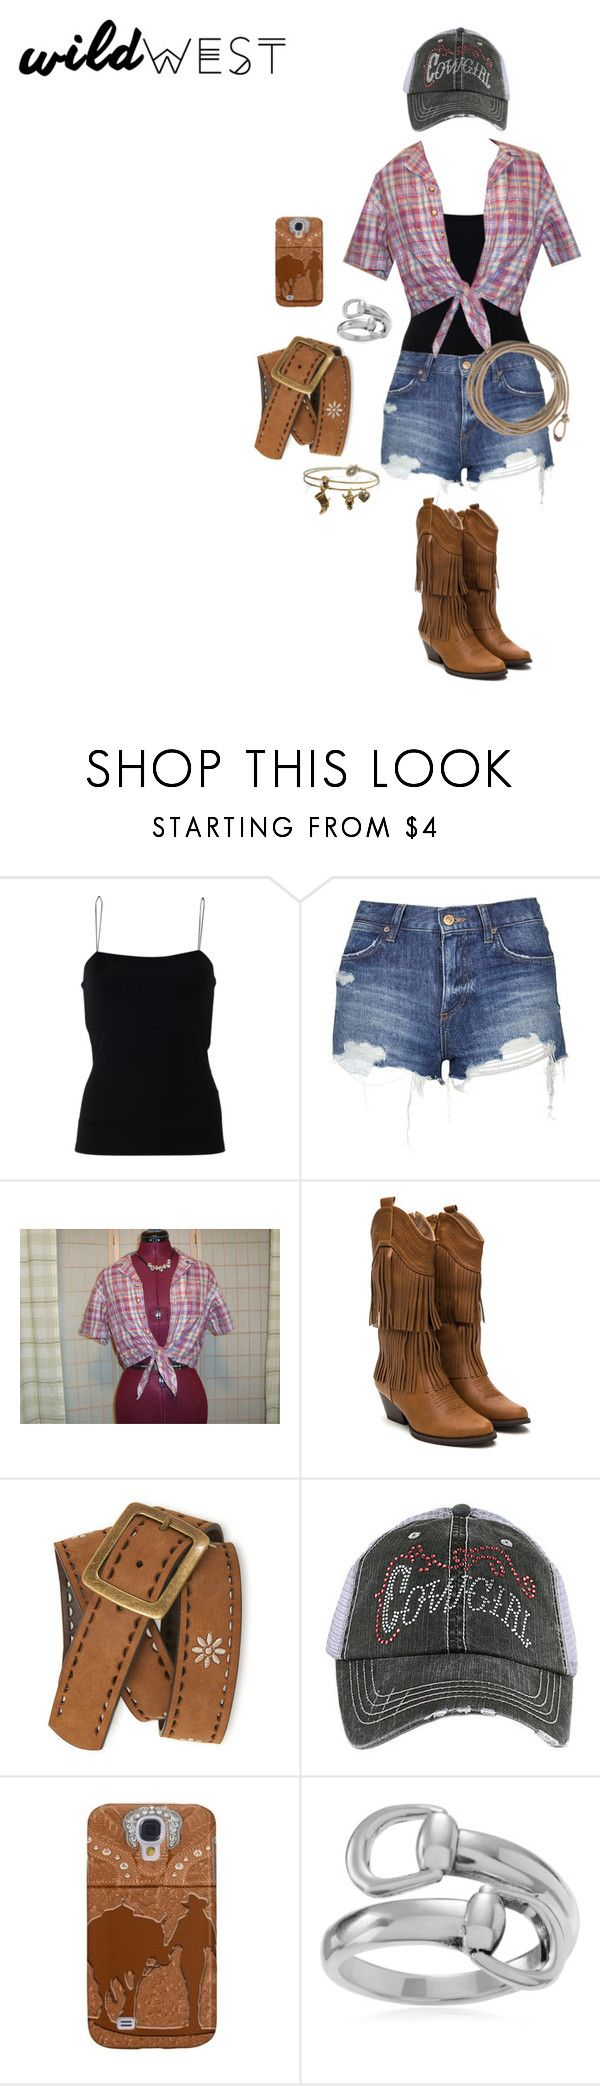 """""""Country Girl Can Survive"""" by losingitlora ❤ liked on Polyvore featuring T By Alexander Wang, Topshop, Liz Claiborne, Aéropostale, Katydid Collection, Journee Collection, Sweet Romance, country, contest and cowgirl"""